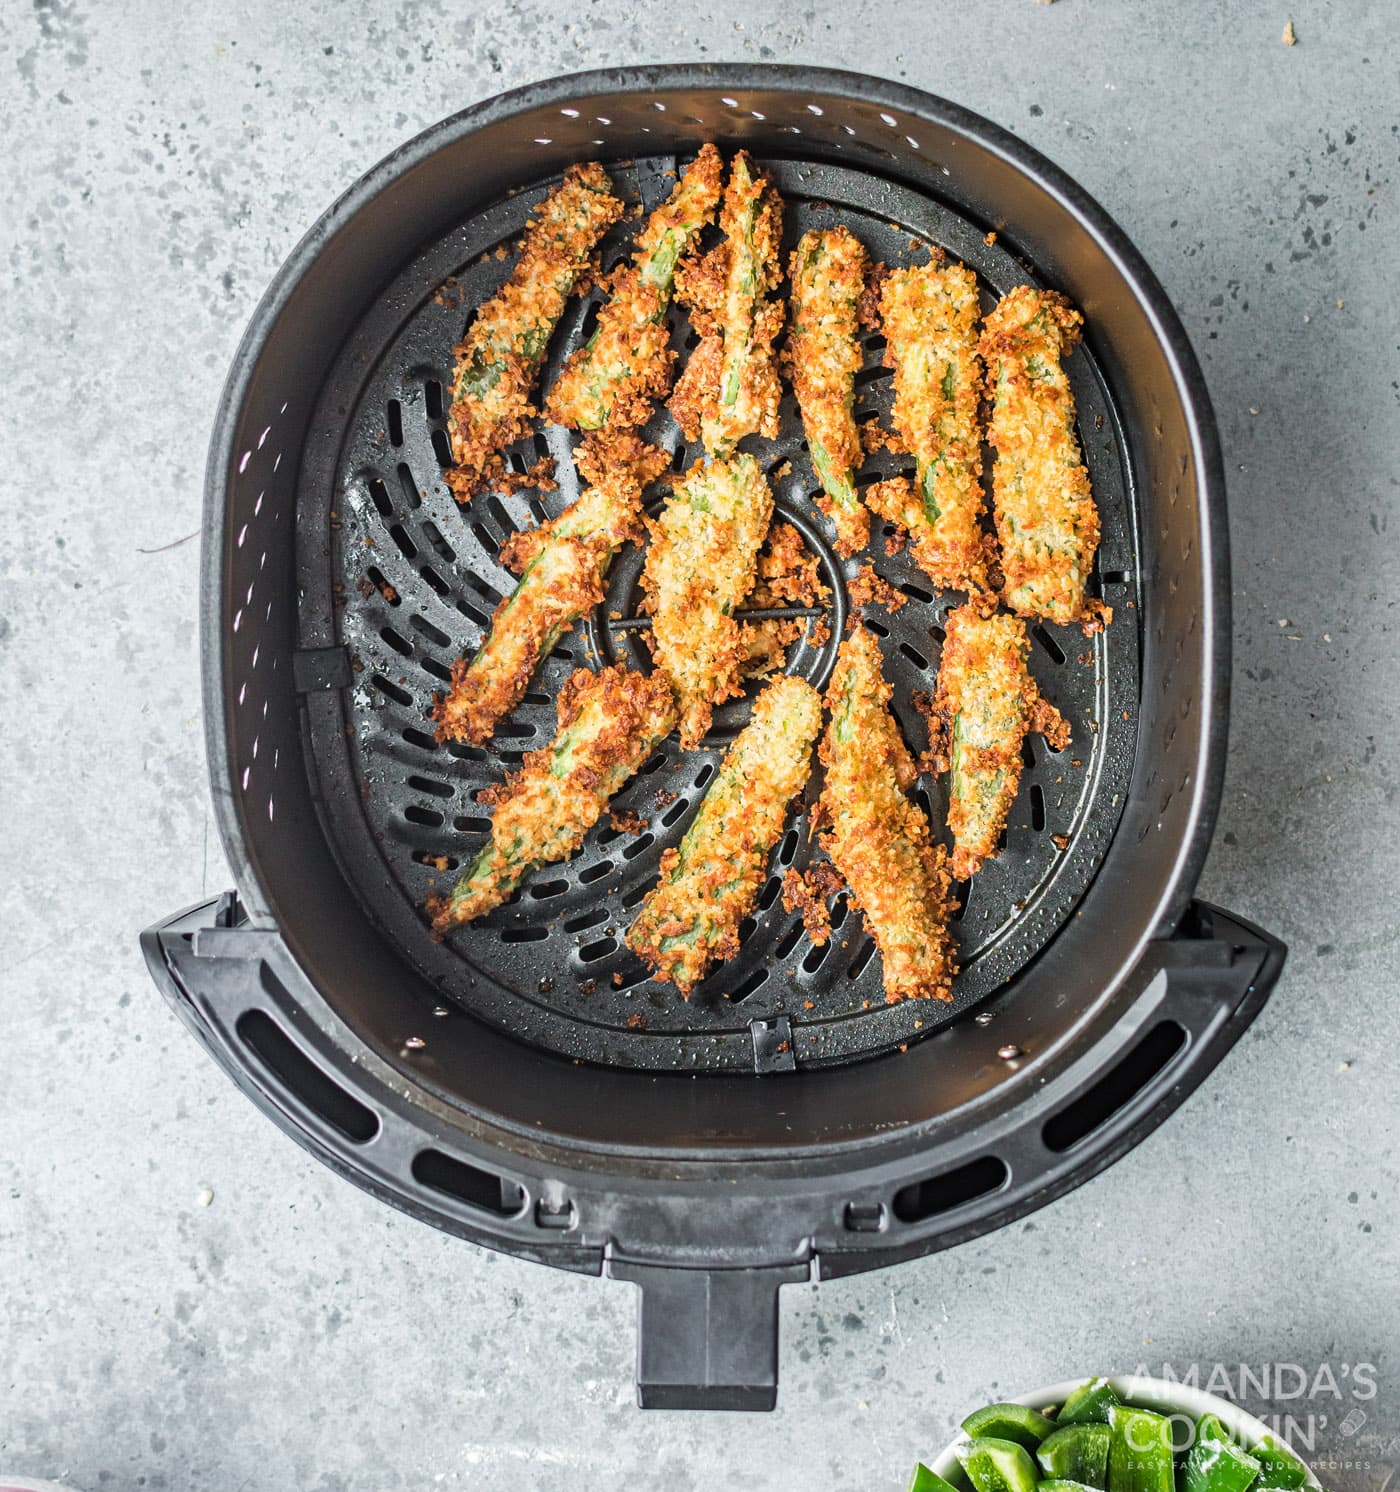 golden brown cooked jalapeno fries in the air fryer